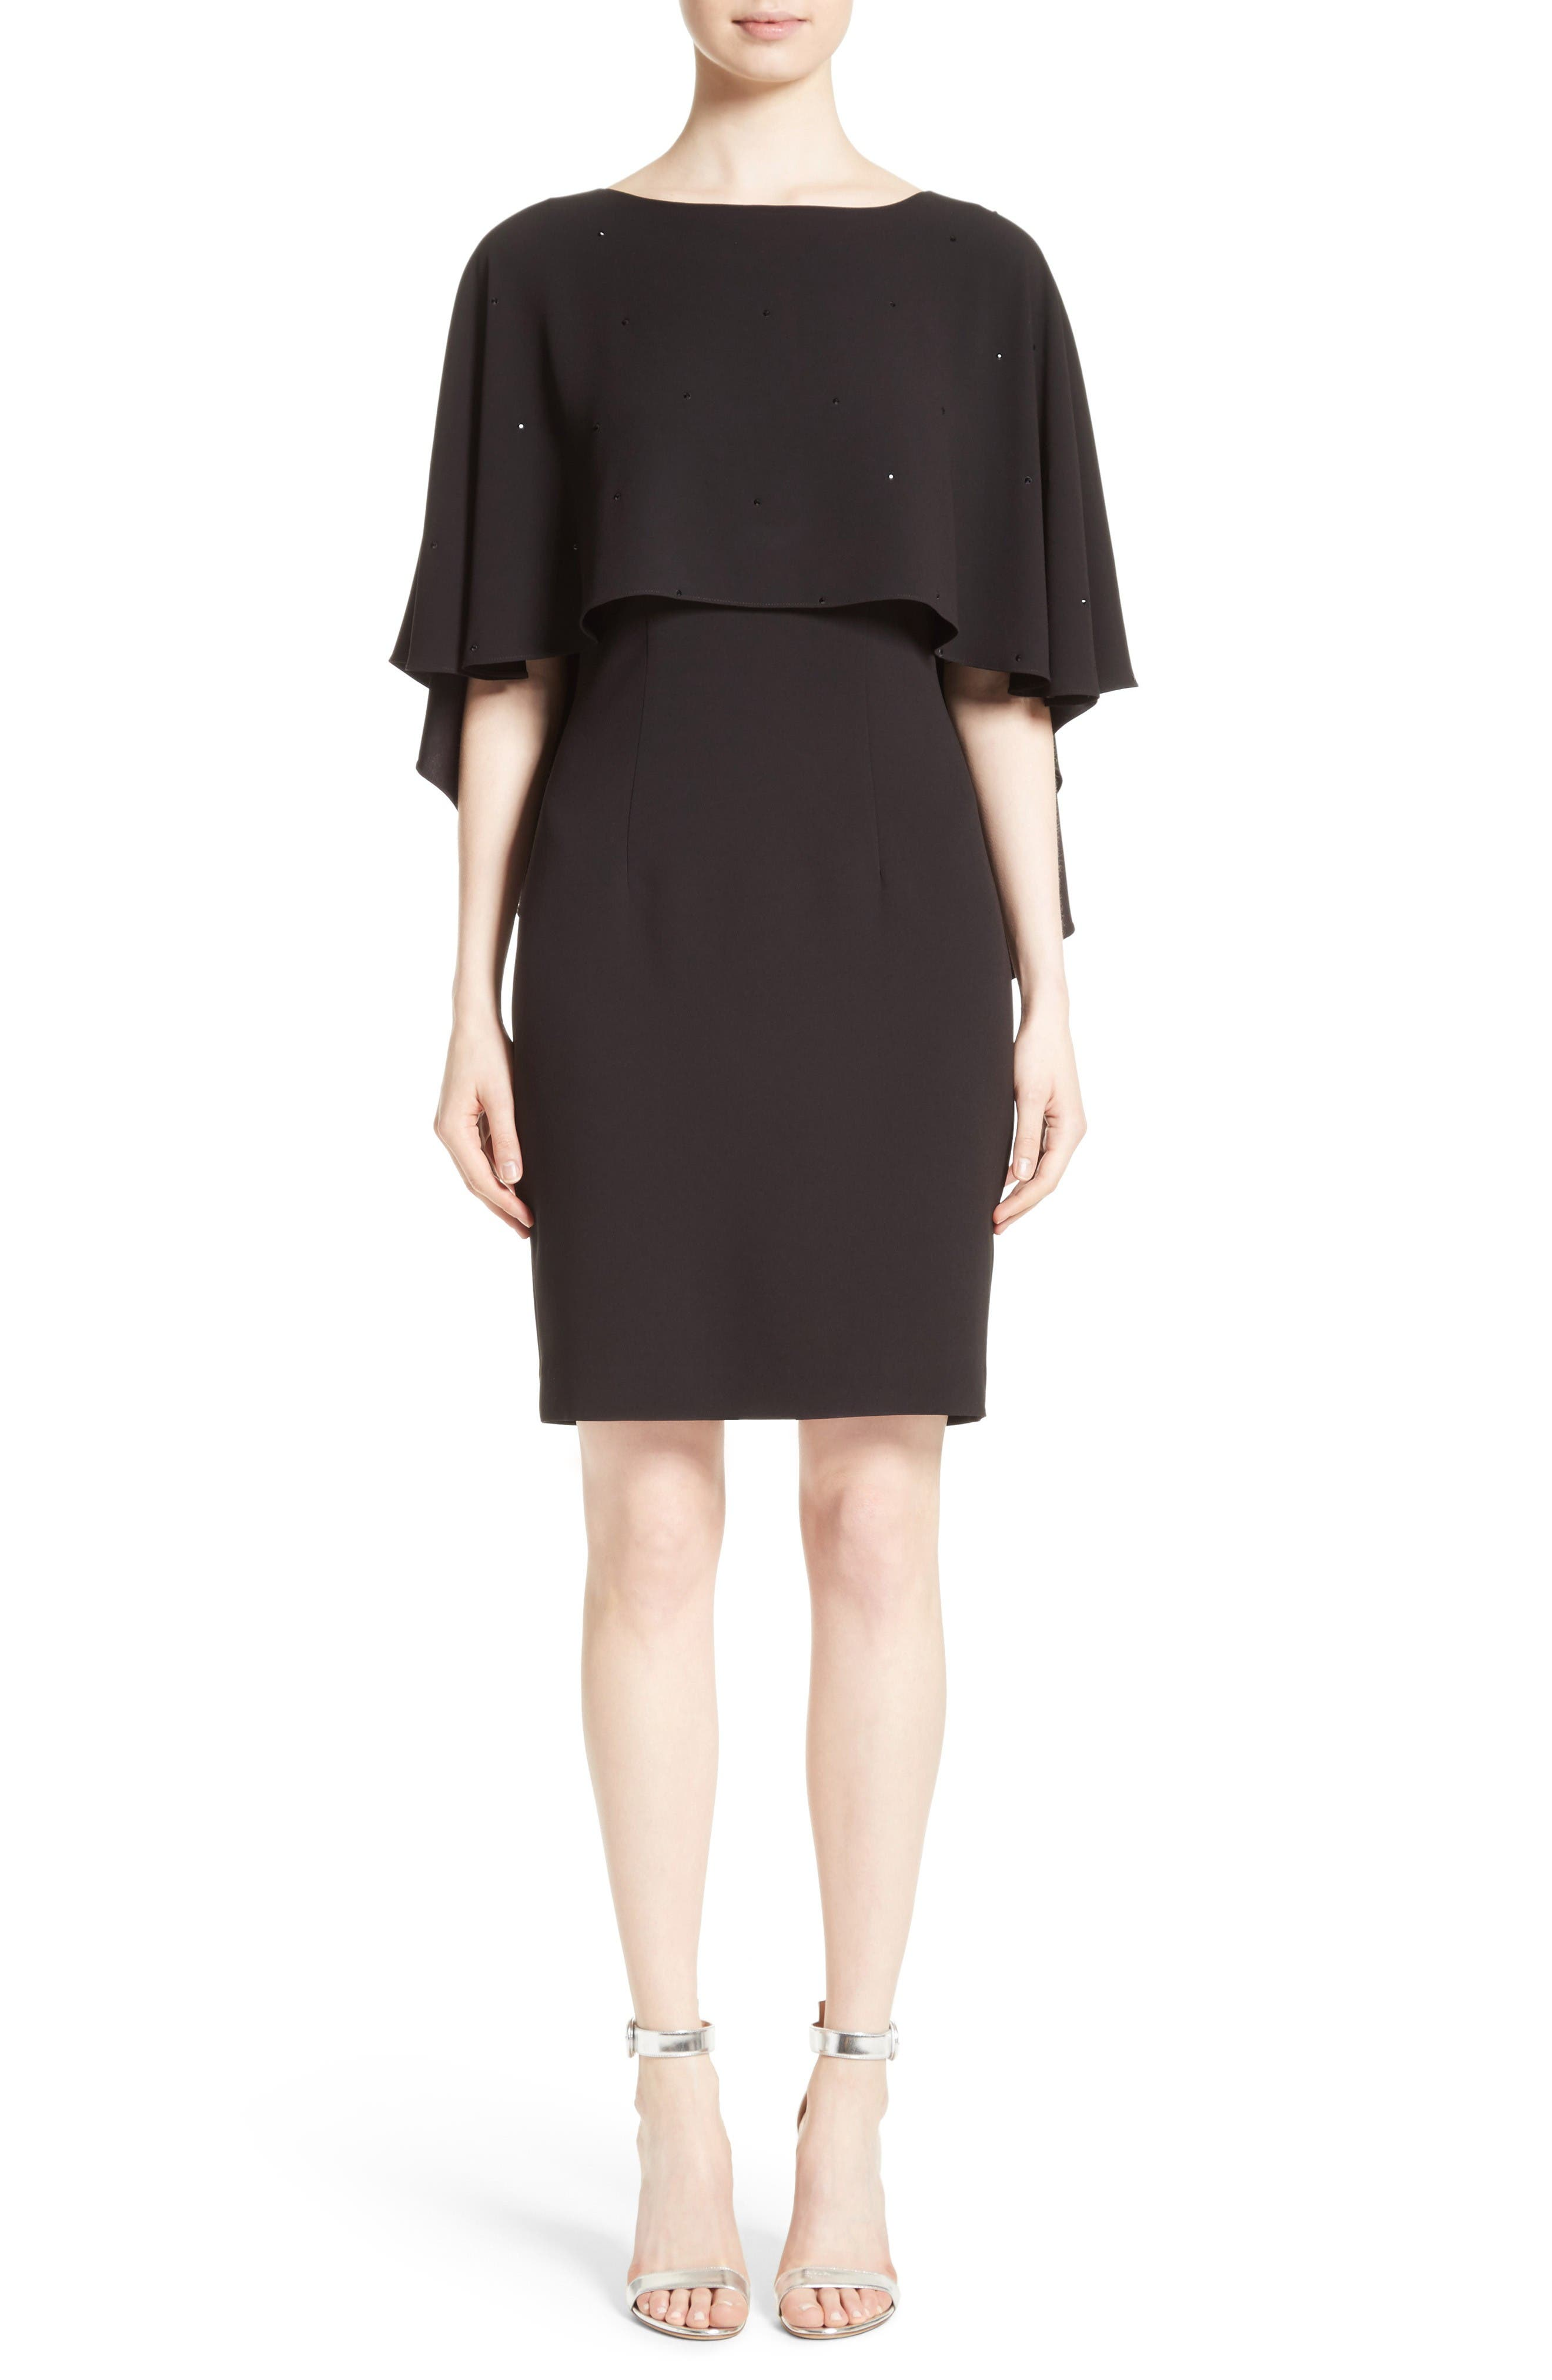 Alternate Image 1 Selected - St. John Collection Satin Back Crepe Cape Dress